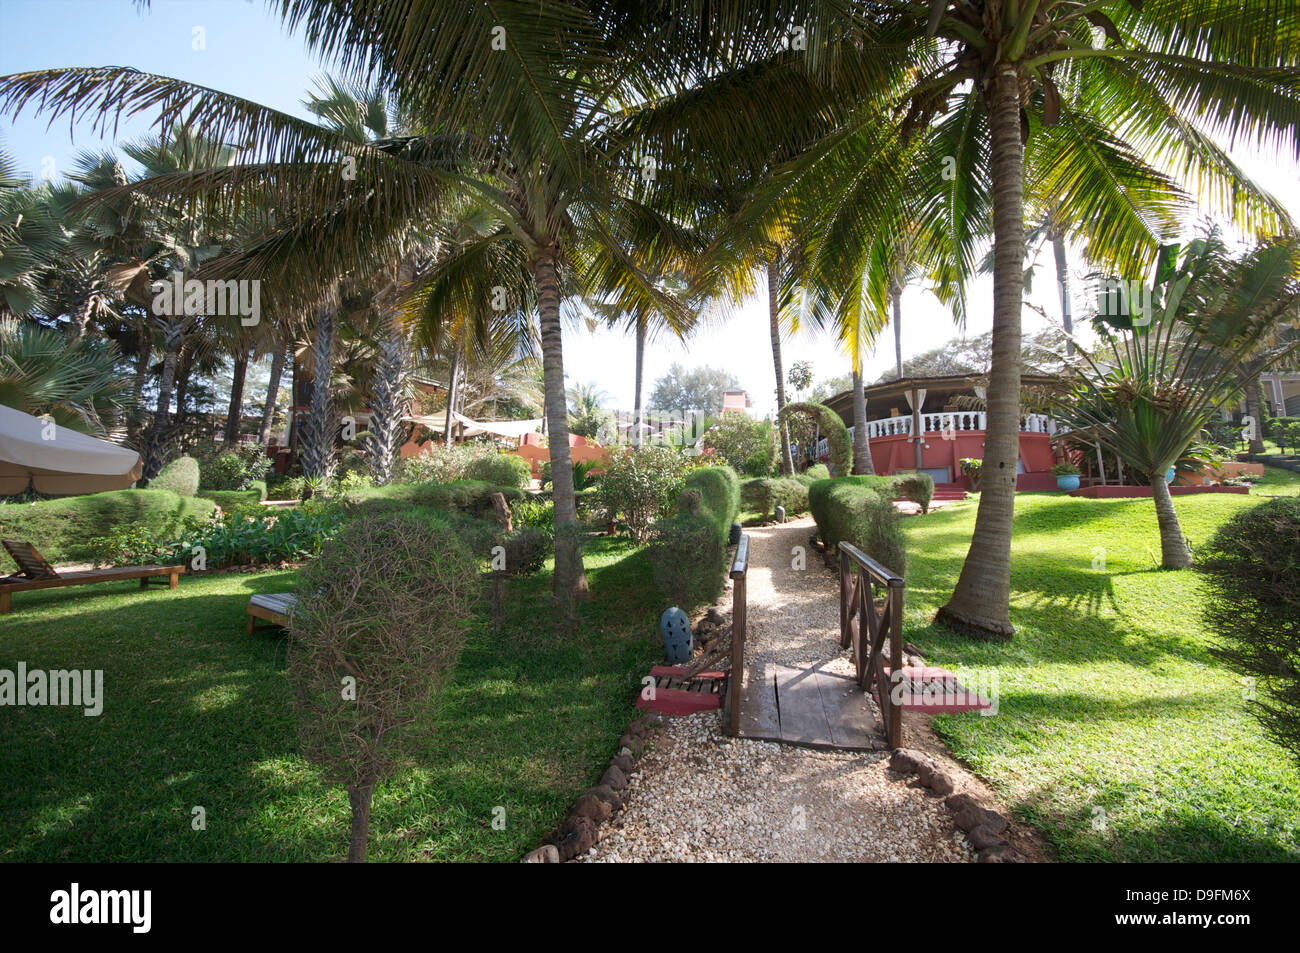 Ngala Lodge, situated between the resorts of Bakau and Fajara, near Banjul, Gambia, West Africa, Africa - Stock Image